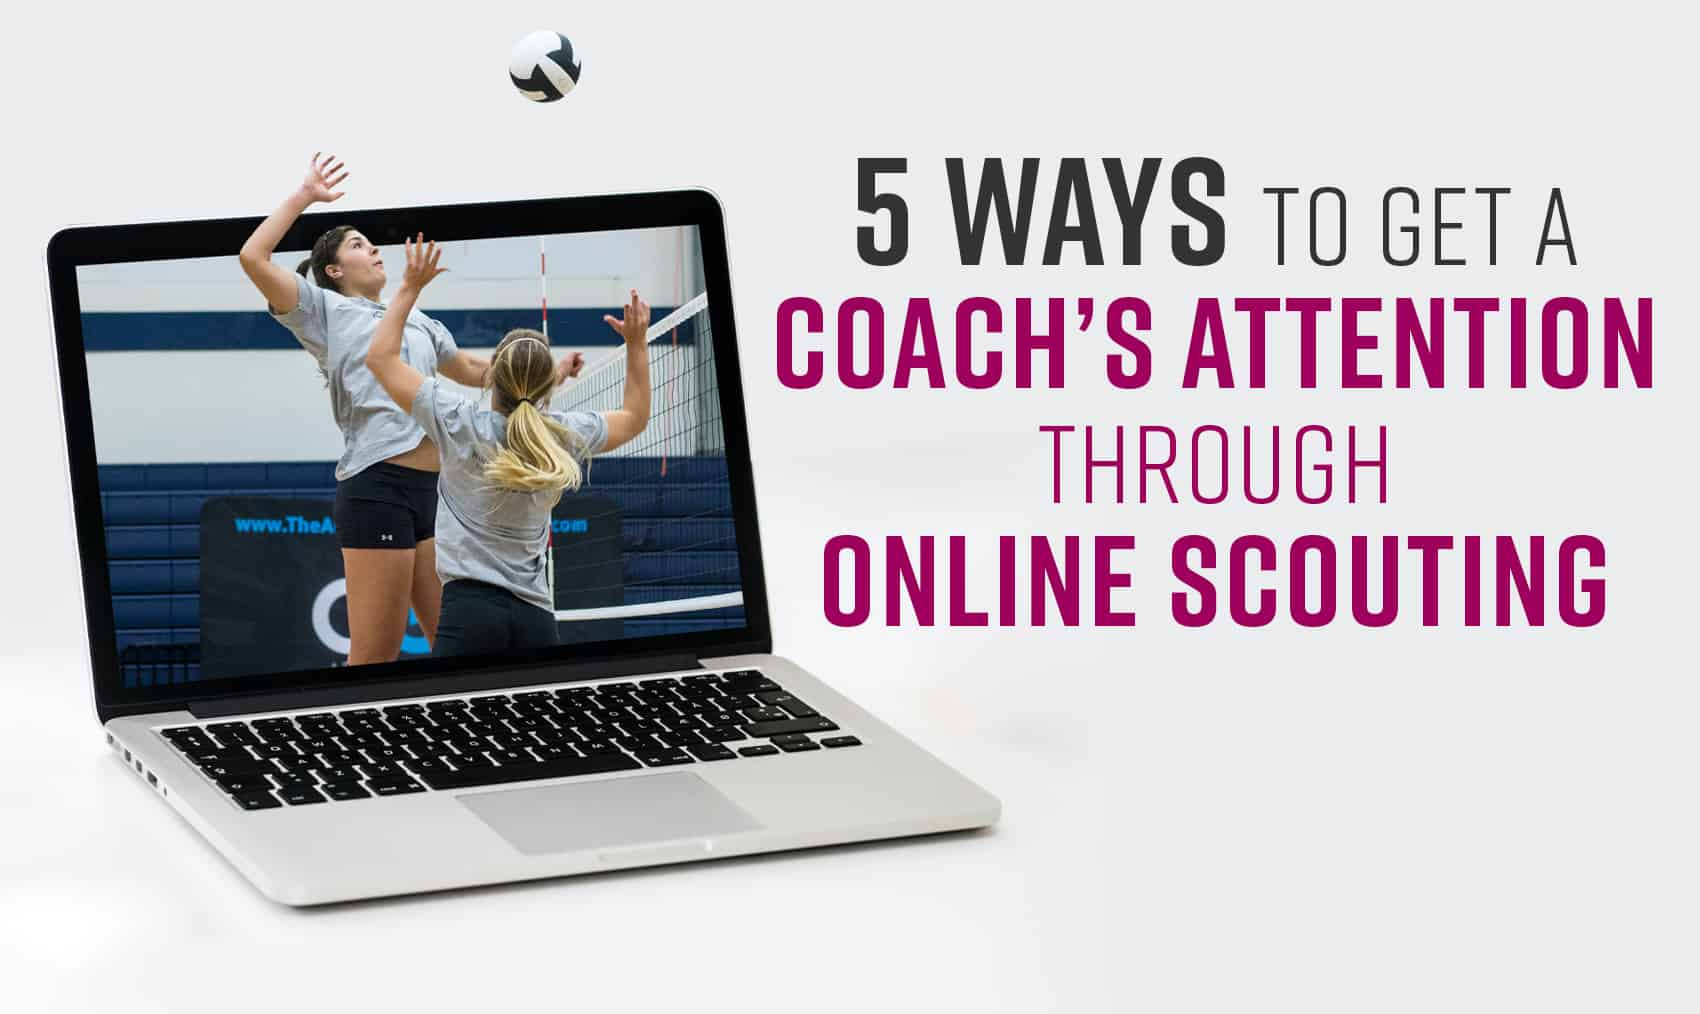 online-scouting